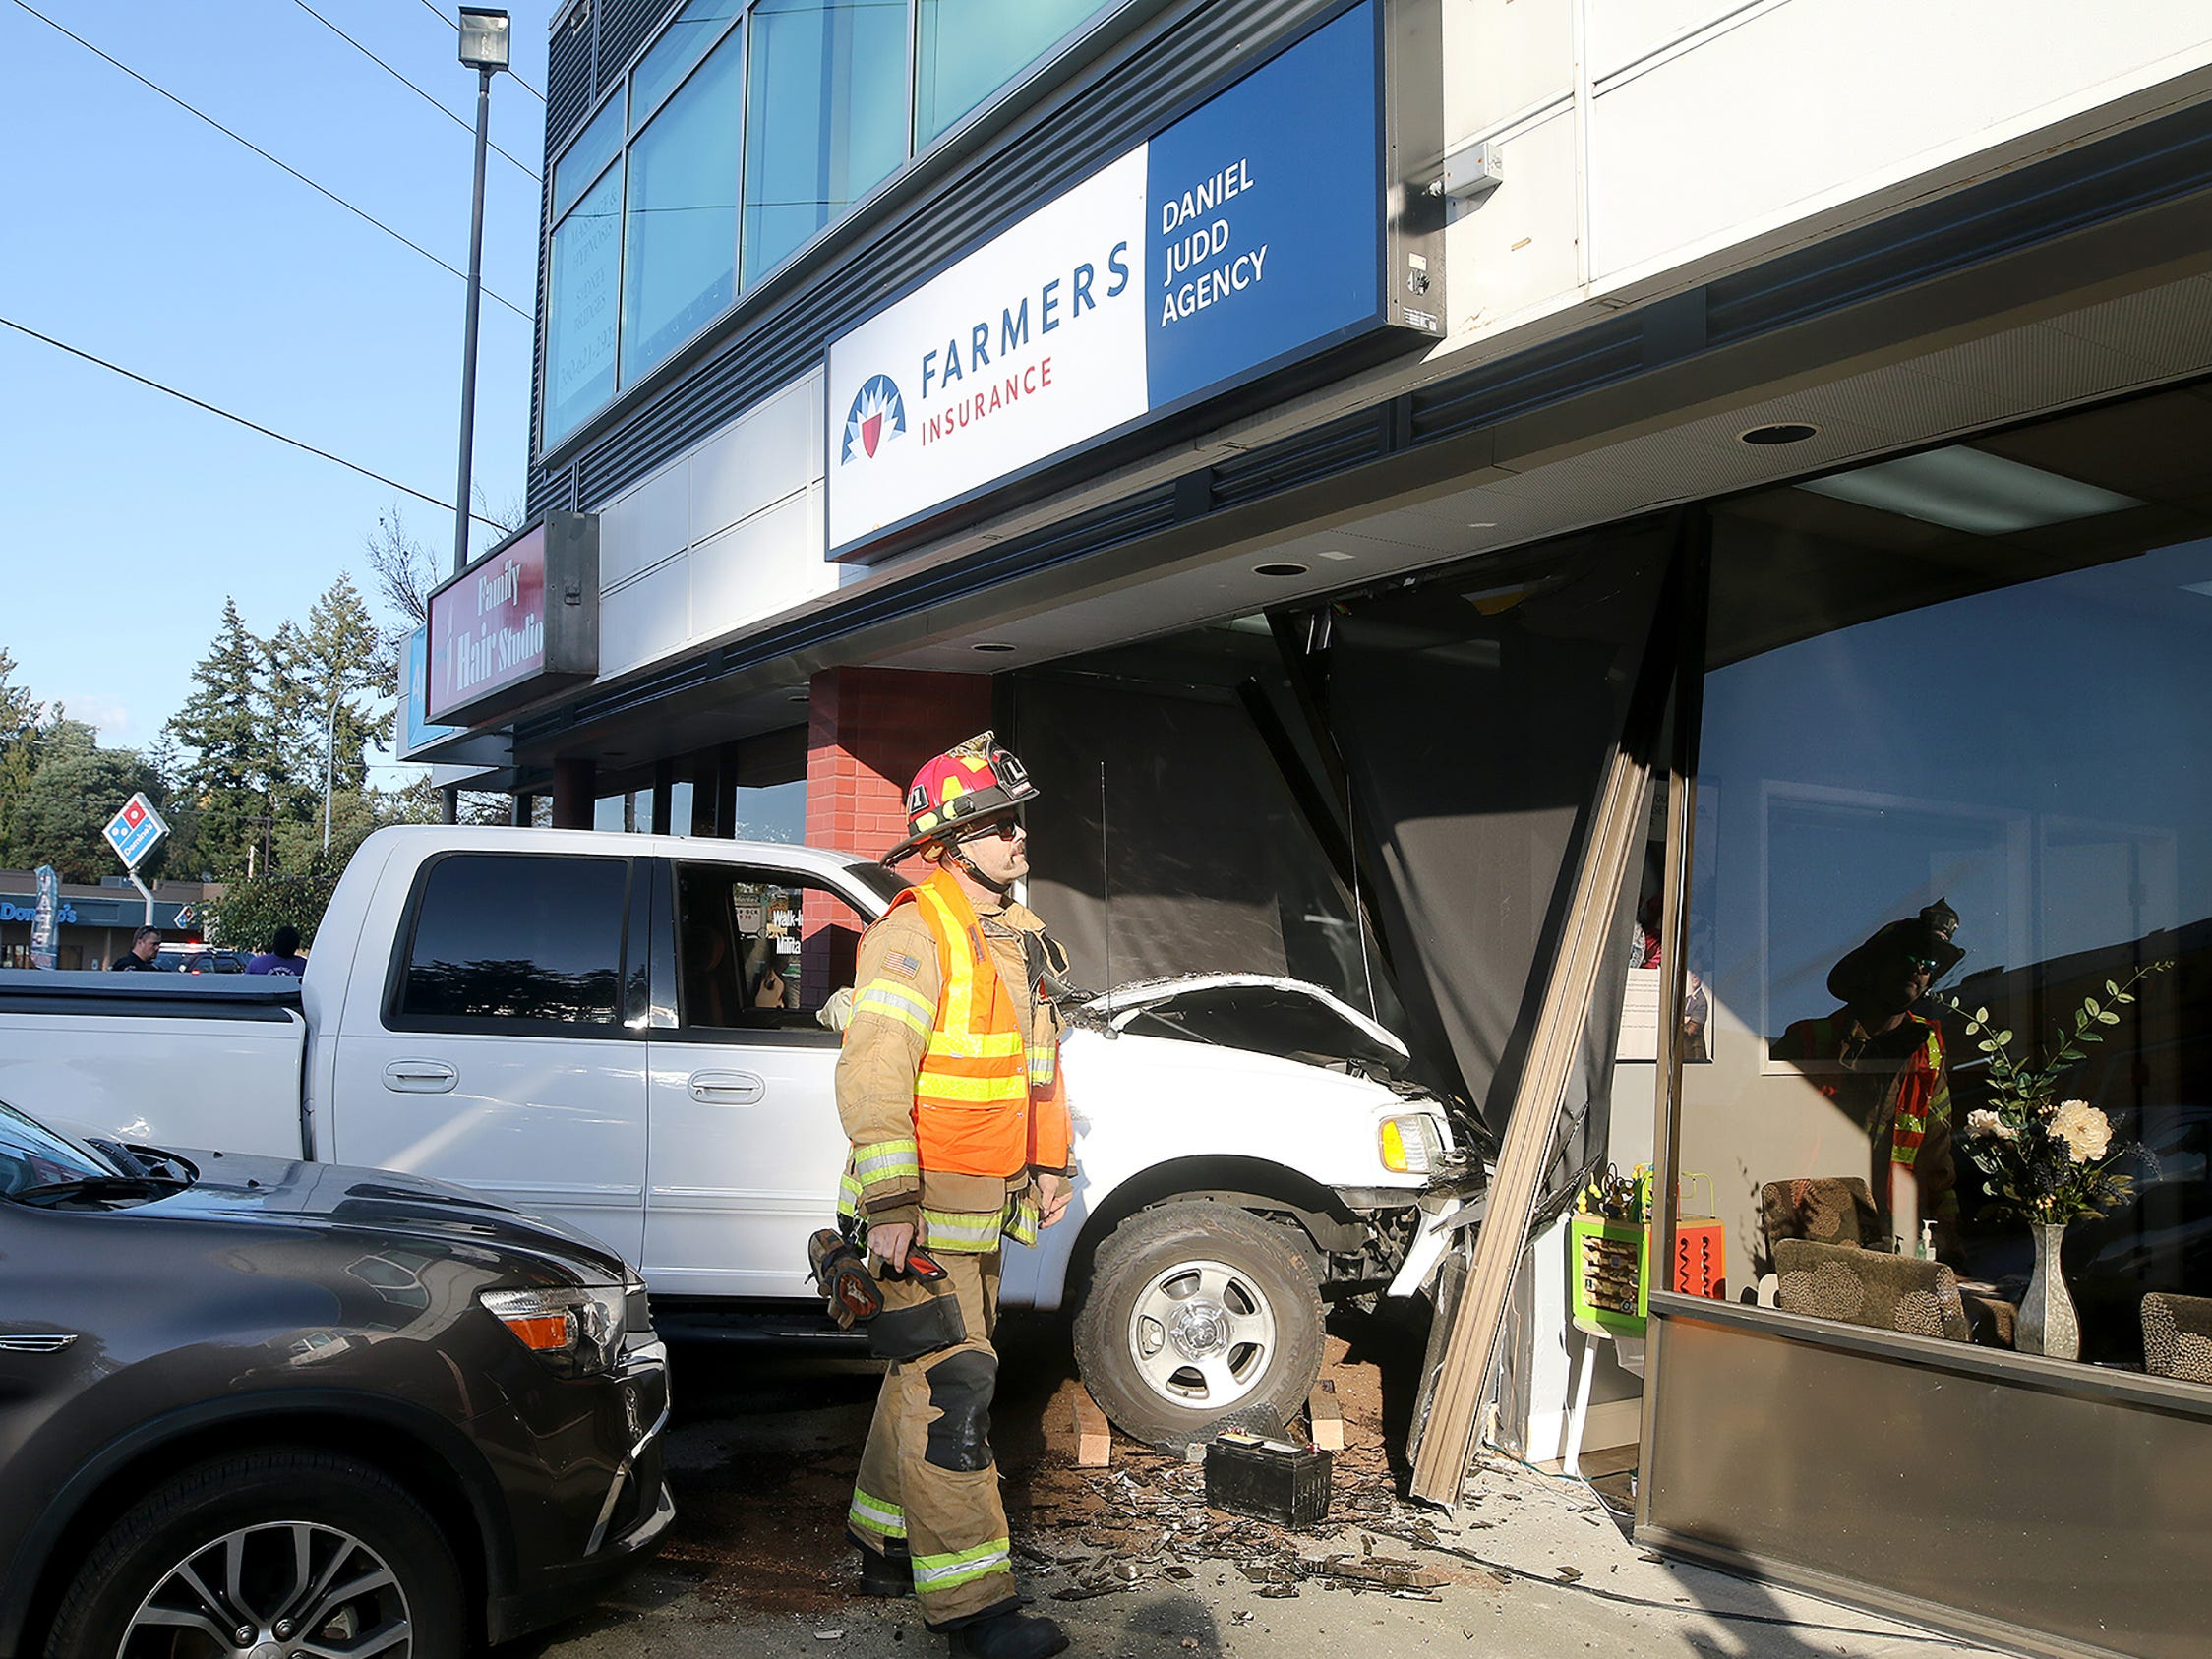 Tom Stanley of the Bremerton Fire Department inspects a building on Kitsap Way where a truck hit the front of the Farmers Insurance on Wednesday, November 7, 2018.